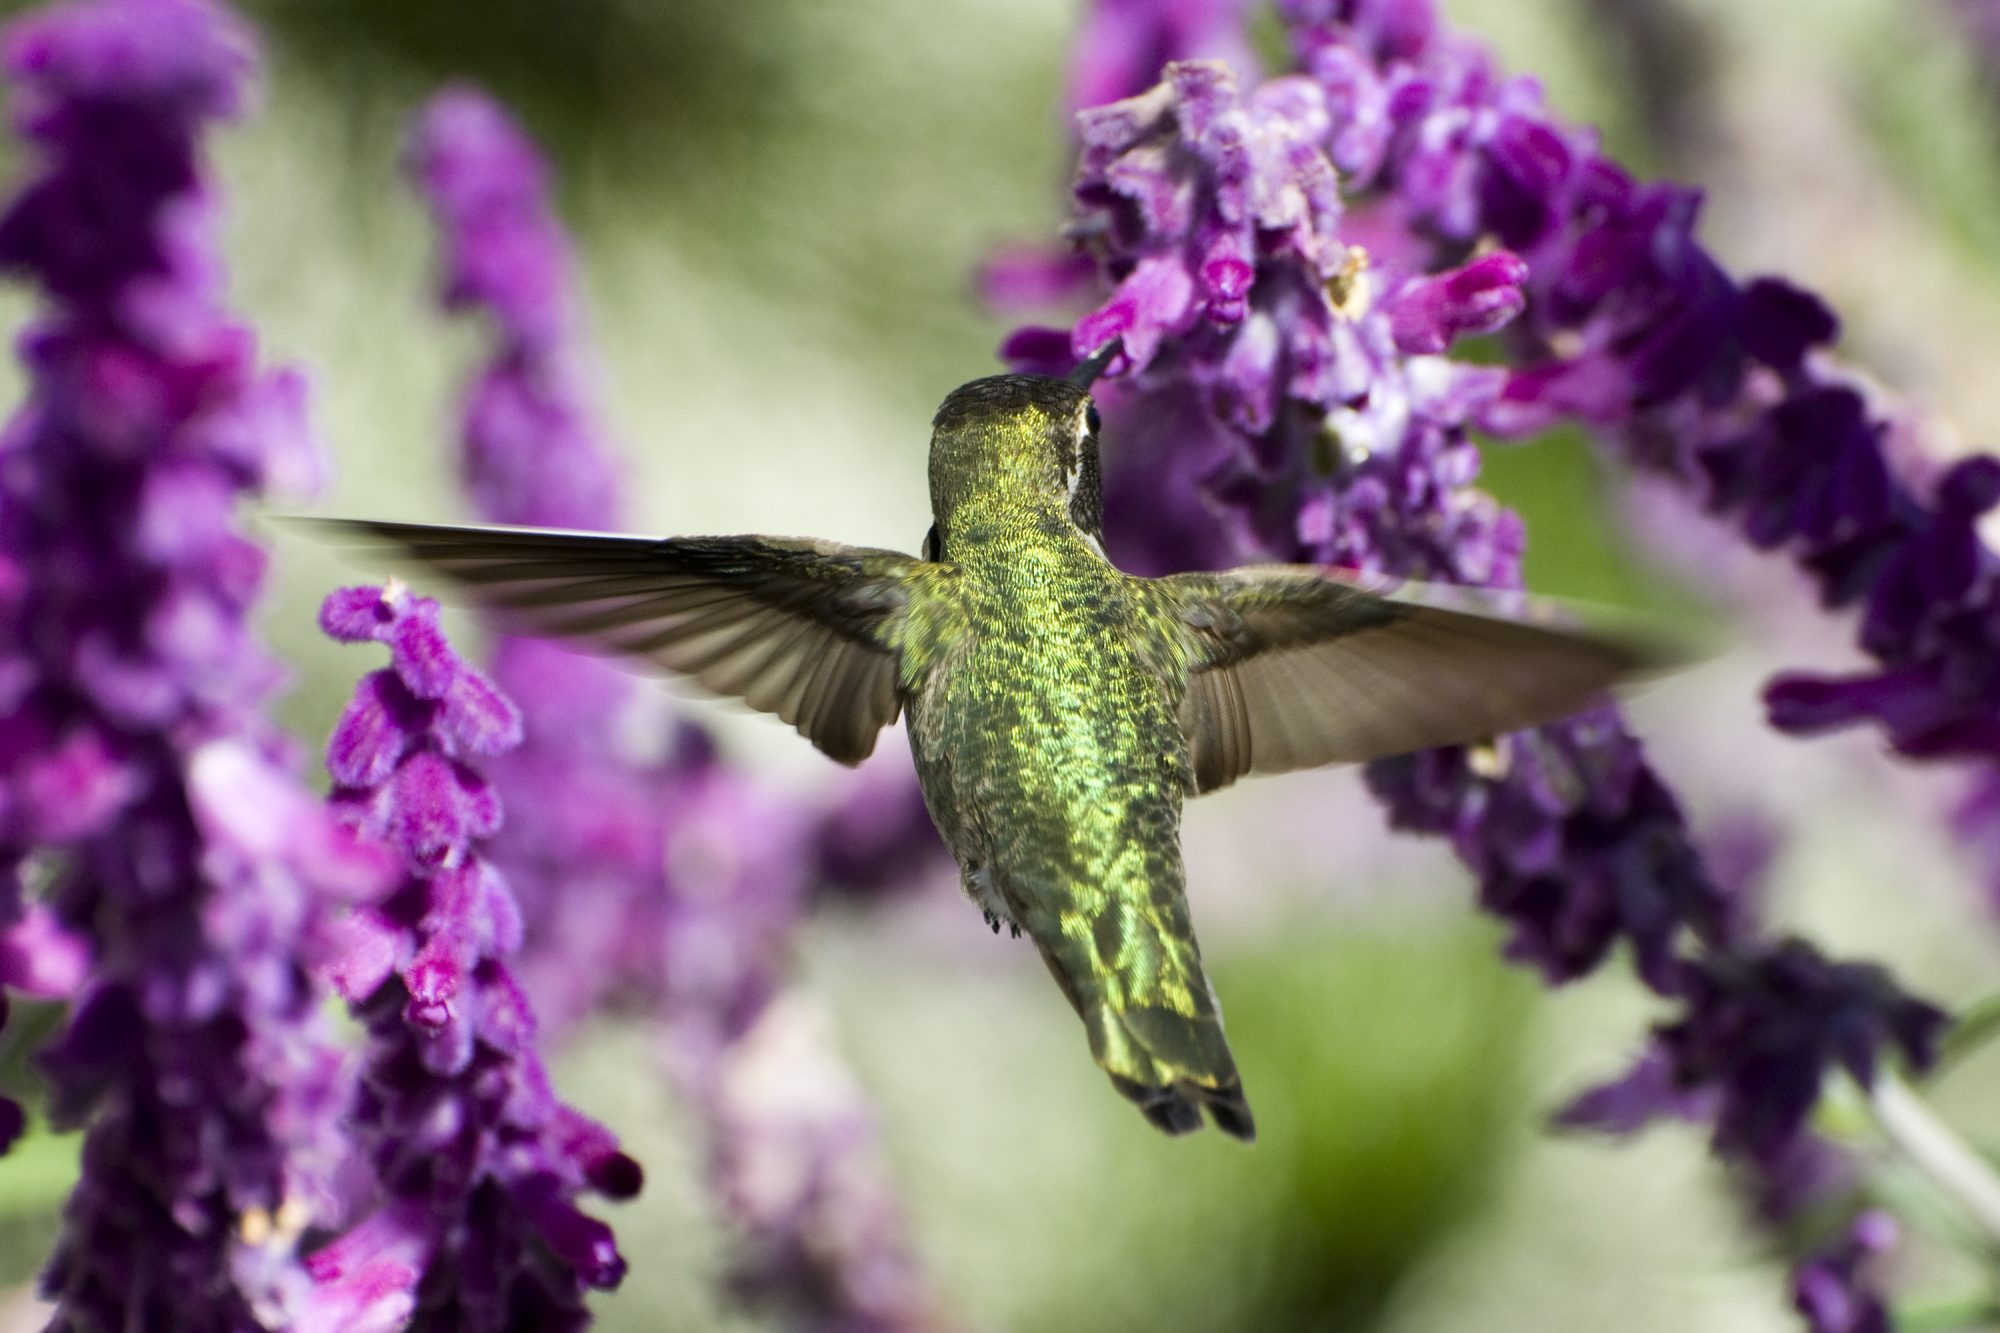 Hummingbird on Flowers